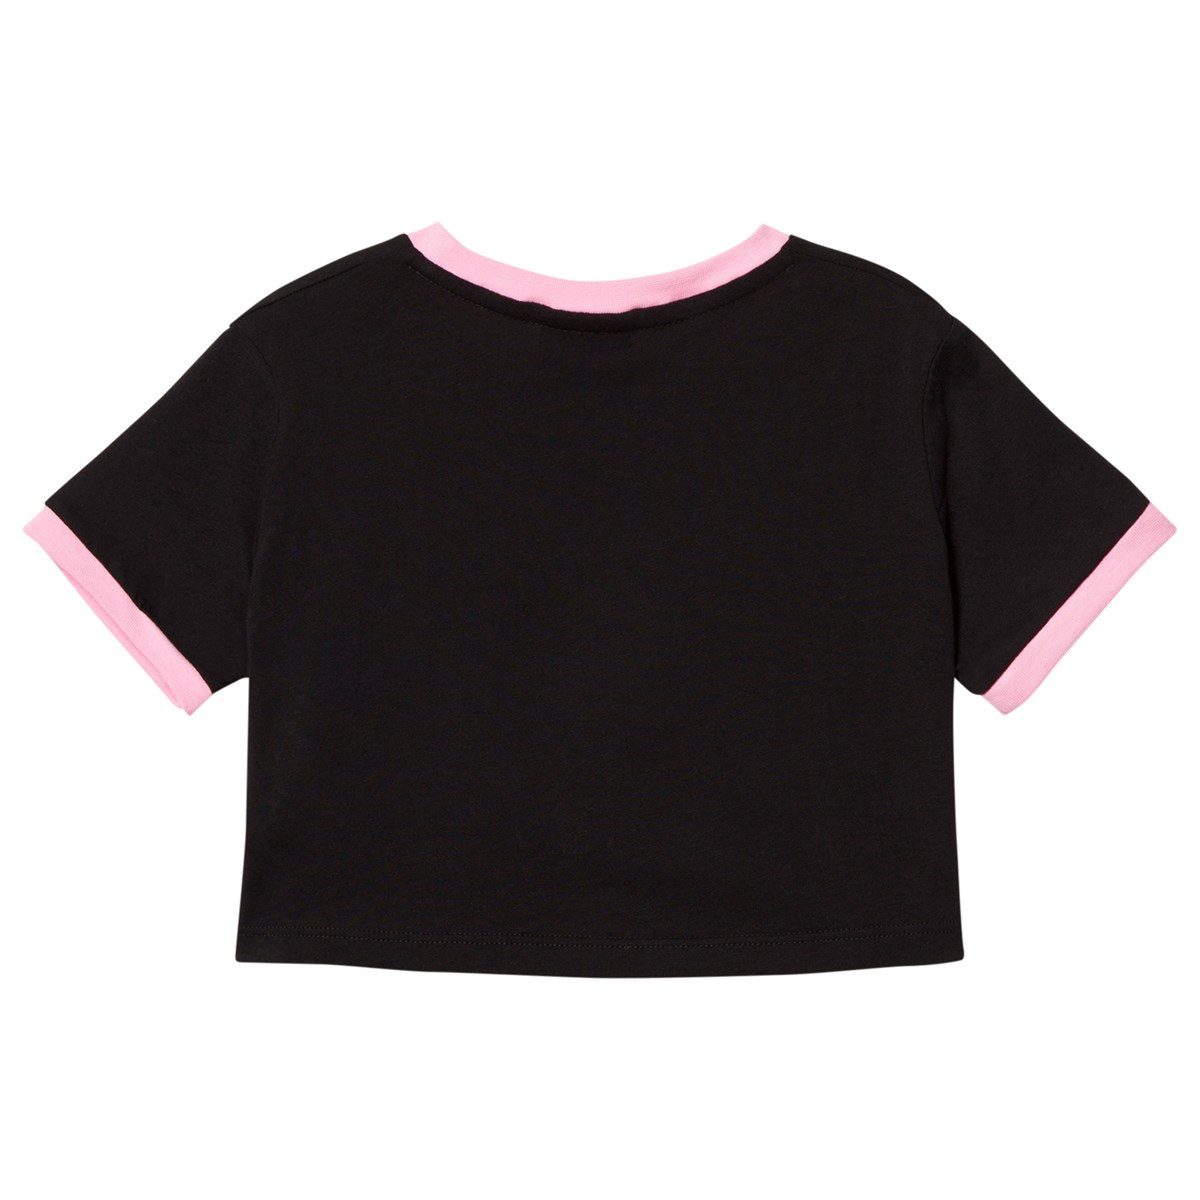 Branded Crop Top Tröja Svart Diadora Babyshop